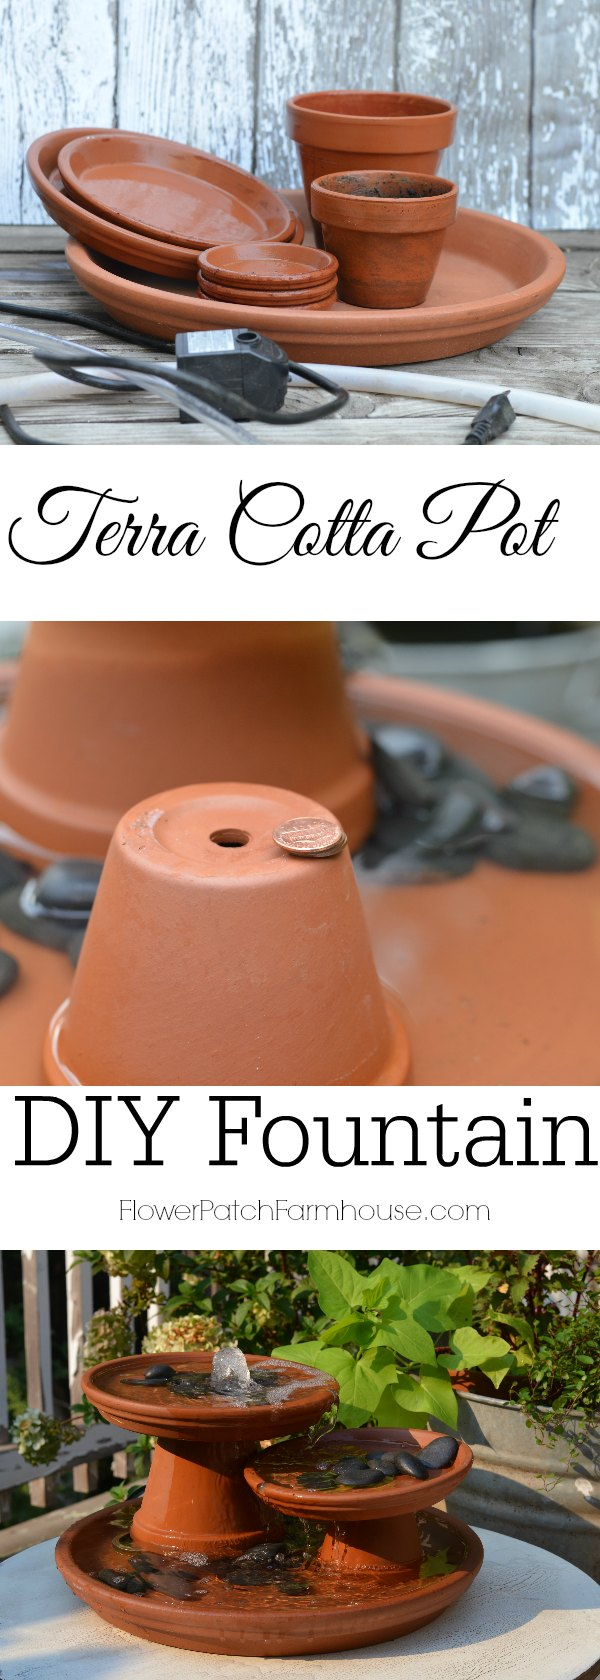 DIY Terra Cotta fountain and how I modified it to make it easier.  Create the soothing sounds of trickling water with this table top DIY fountain!